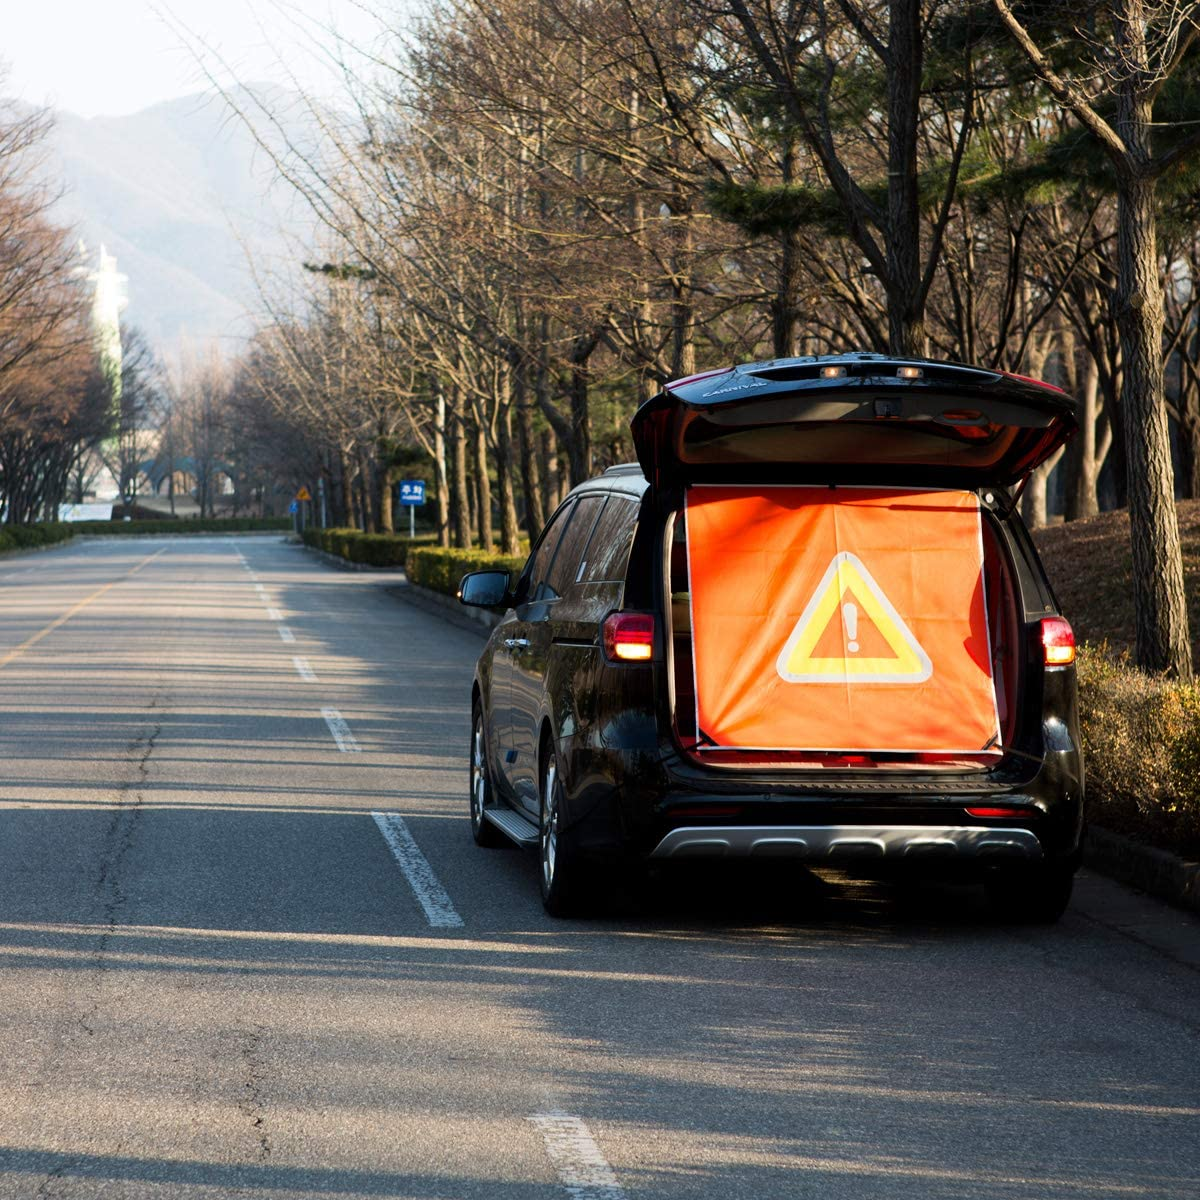 SUV Secondary Accident Prevention Safety Sign Reflector Warning Triangle Passenger Cars//SUV Rescue Goods Car Supplies Emergency Supplies ZZACPYU